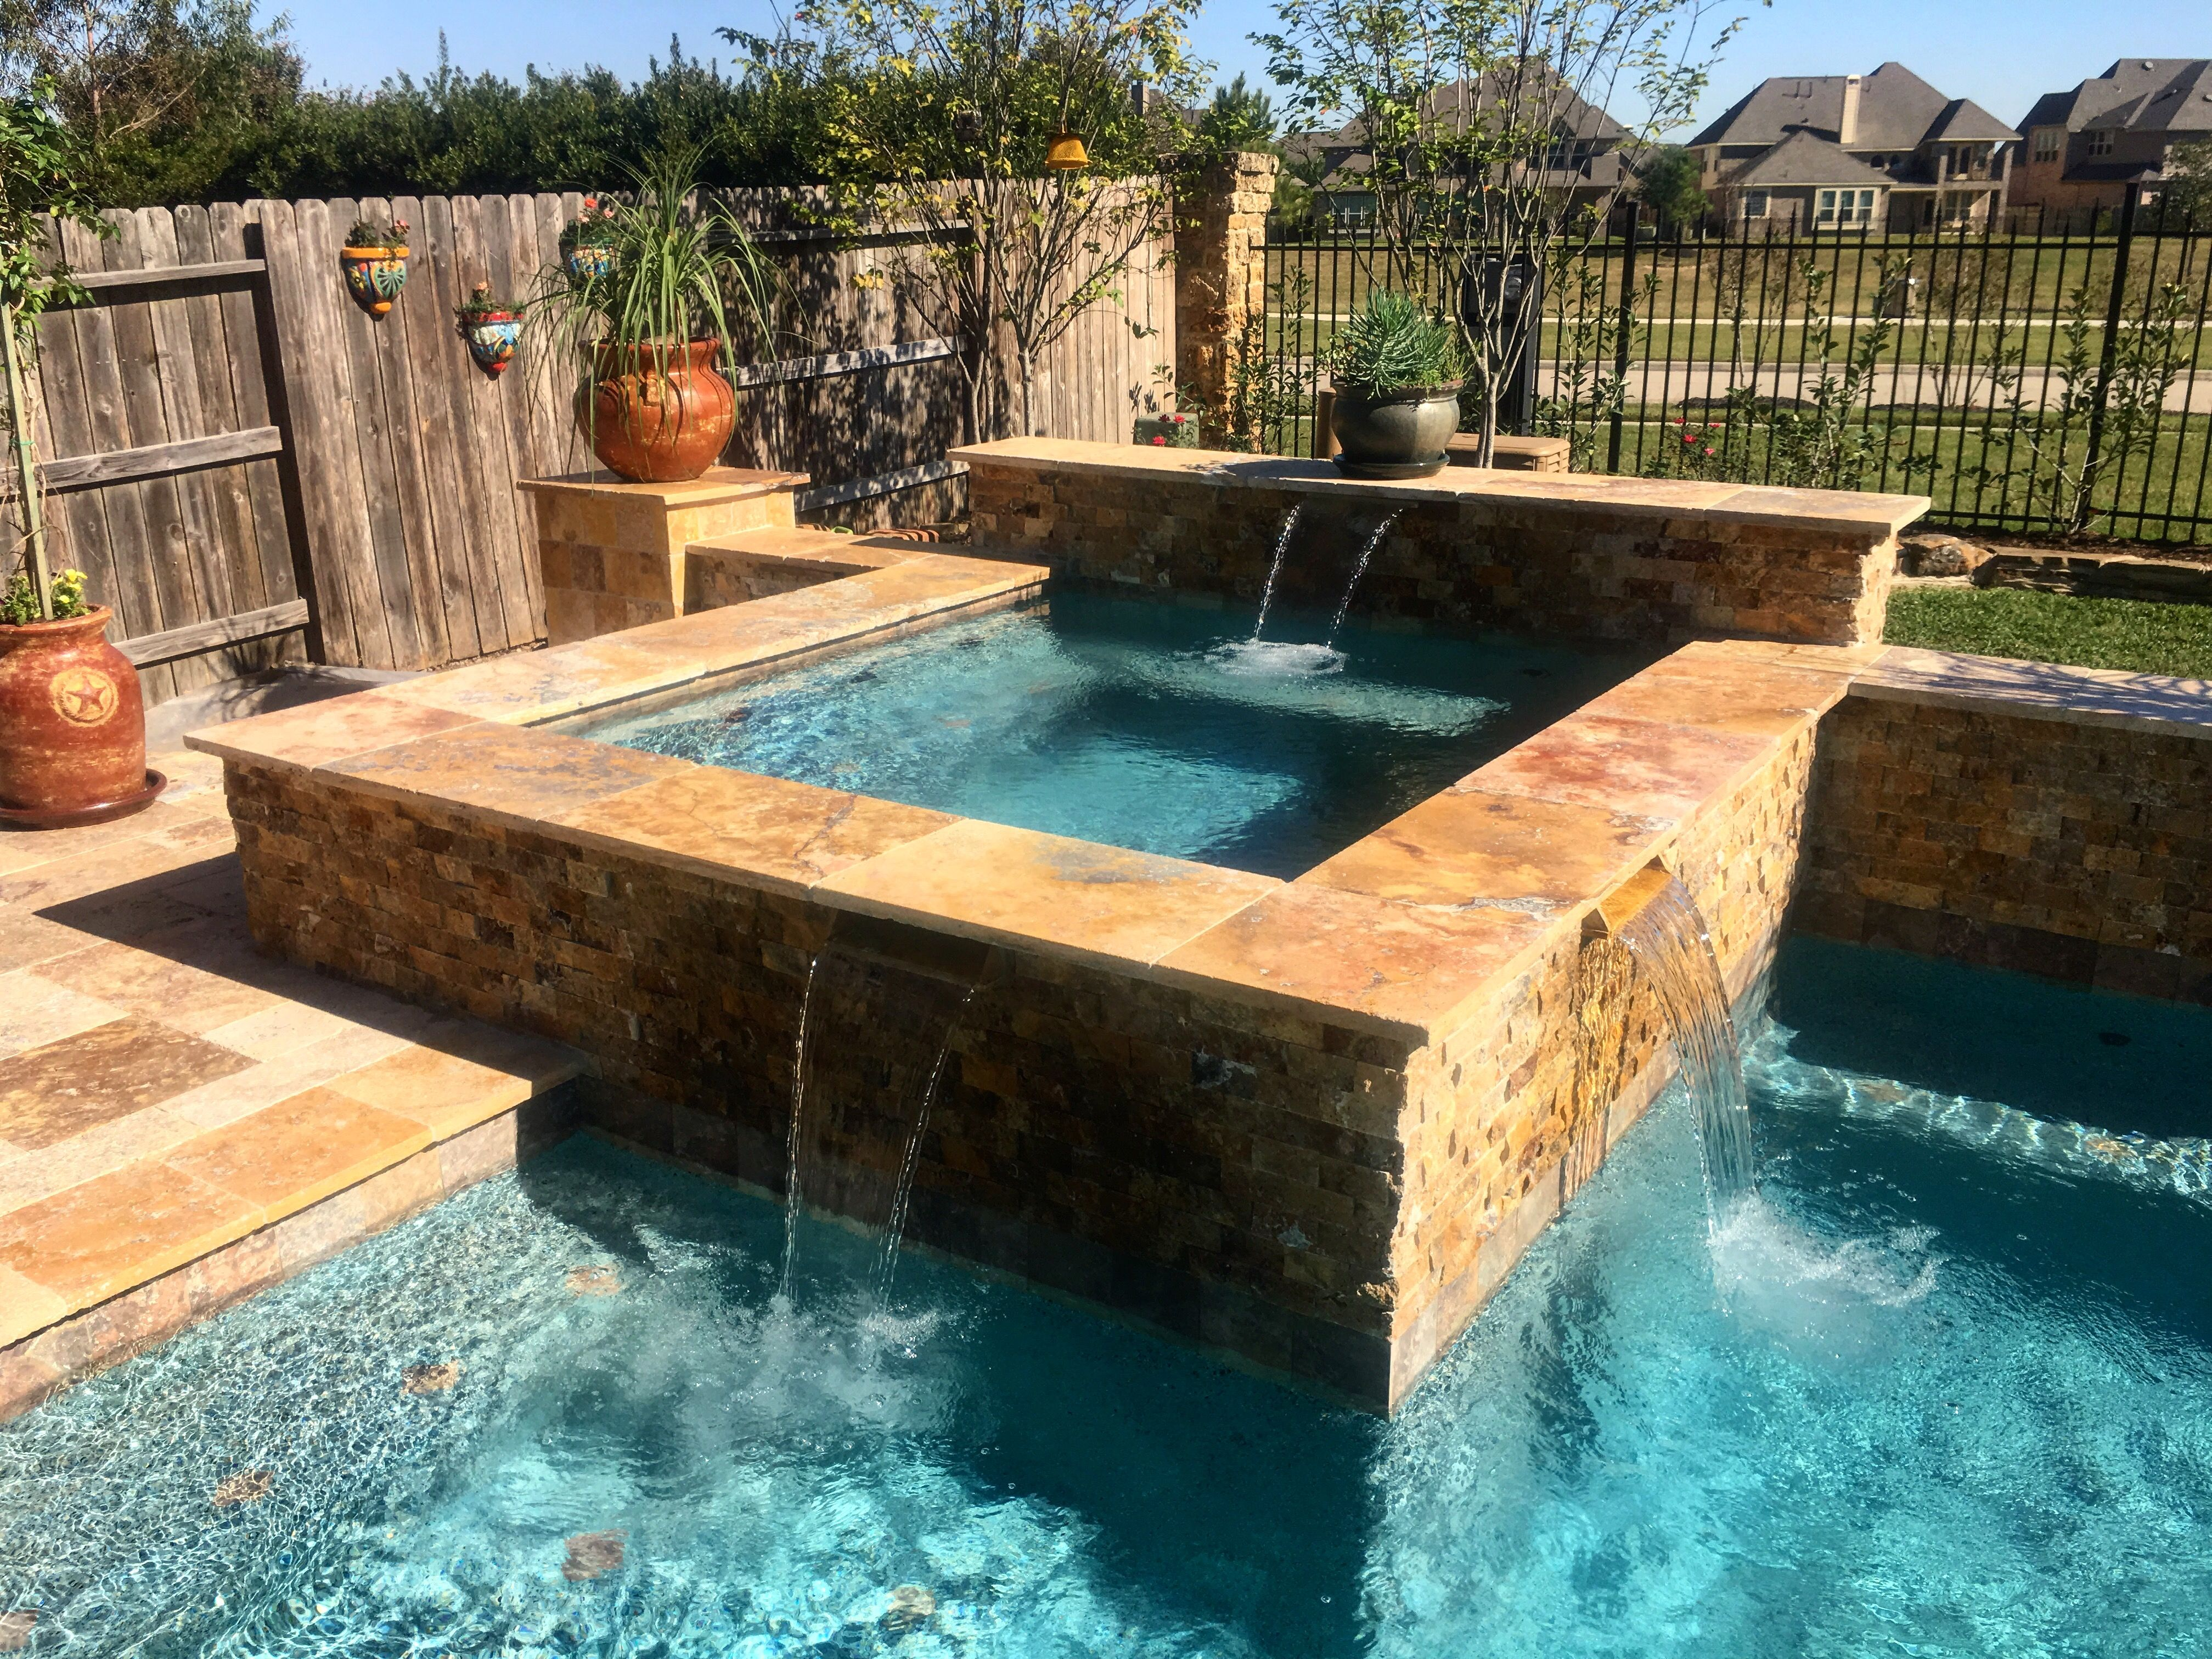 Custom spa! The beauty of designing pools are the outcomes ...